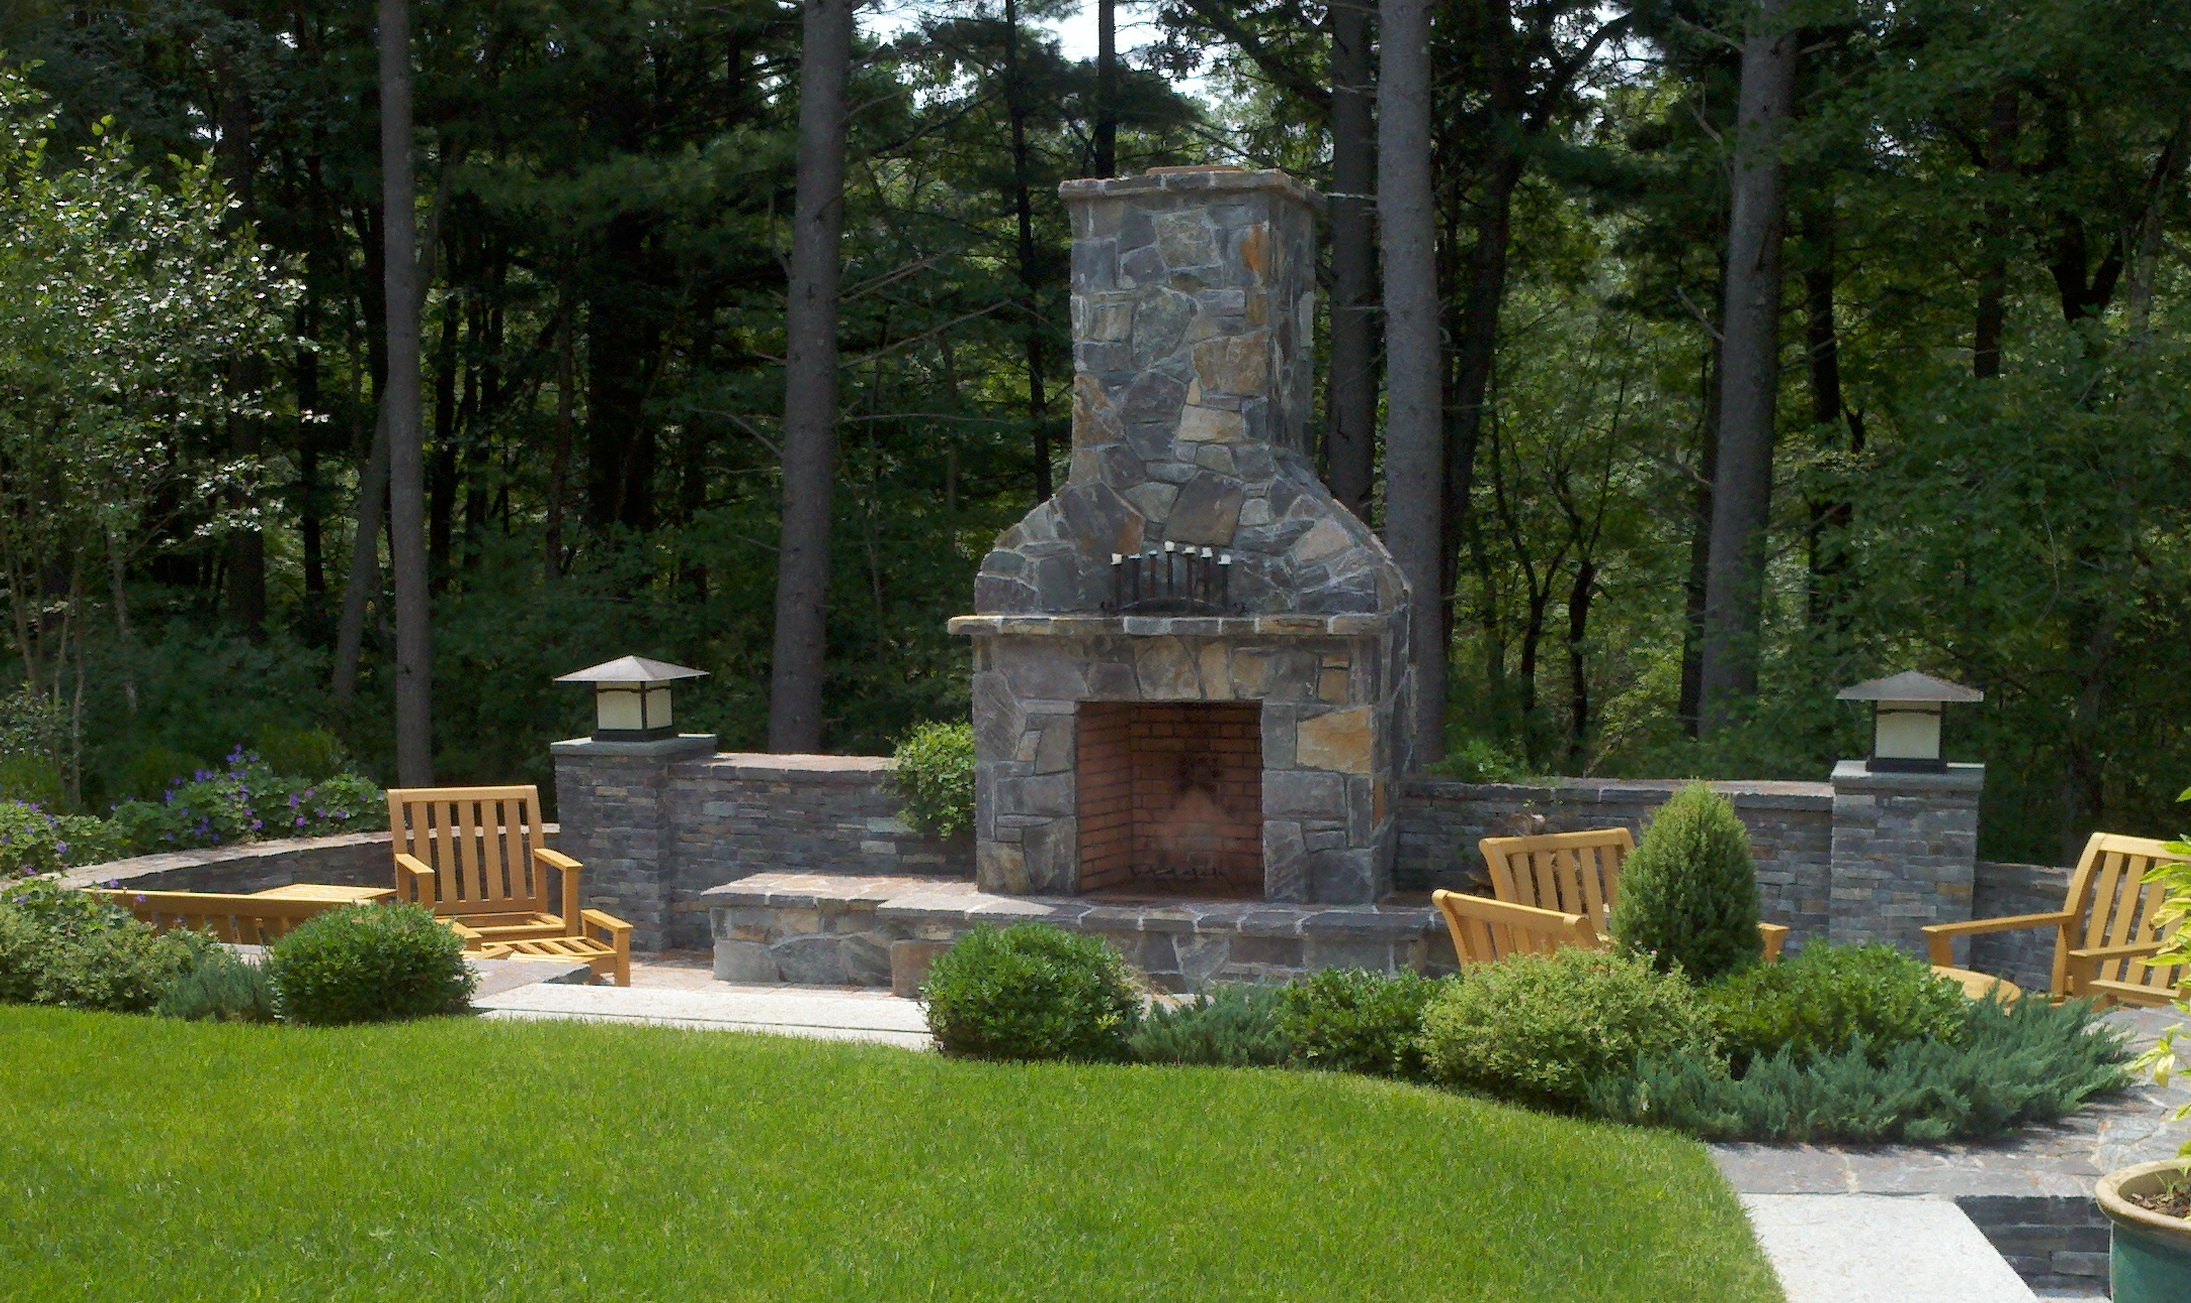 Design guide for outdoor firplaces and firepits | Garden Design for on color garden design, wall garden design, wood garden design, interior garden design, home garden design, office garden design, deck garden design, exterior home, curb appeal garden design, porch garden design, bathroom garden design, make garden design, industrial garden design, exterior garden window, entrance garden design, yard garden design, exterior cottage garden, furniture garden design, outdoor garden design, kitchen garden design,